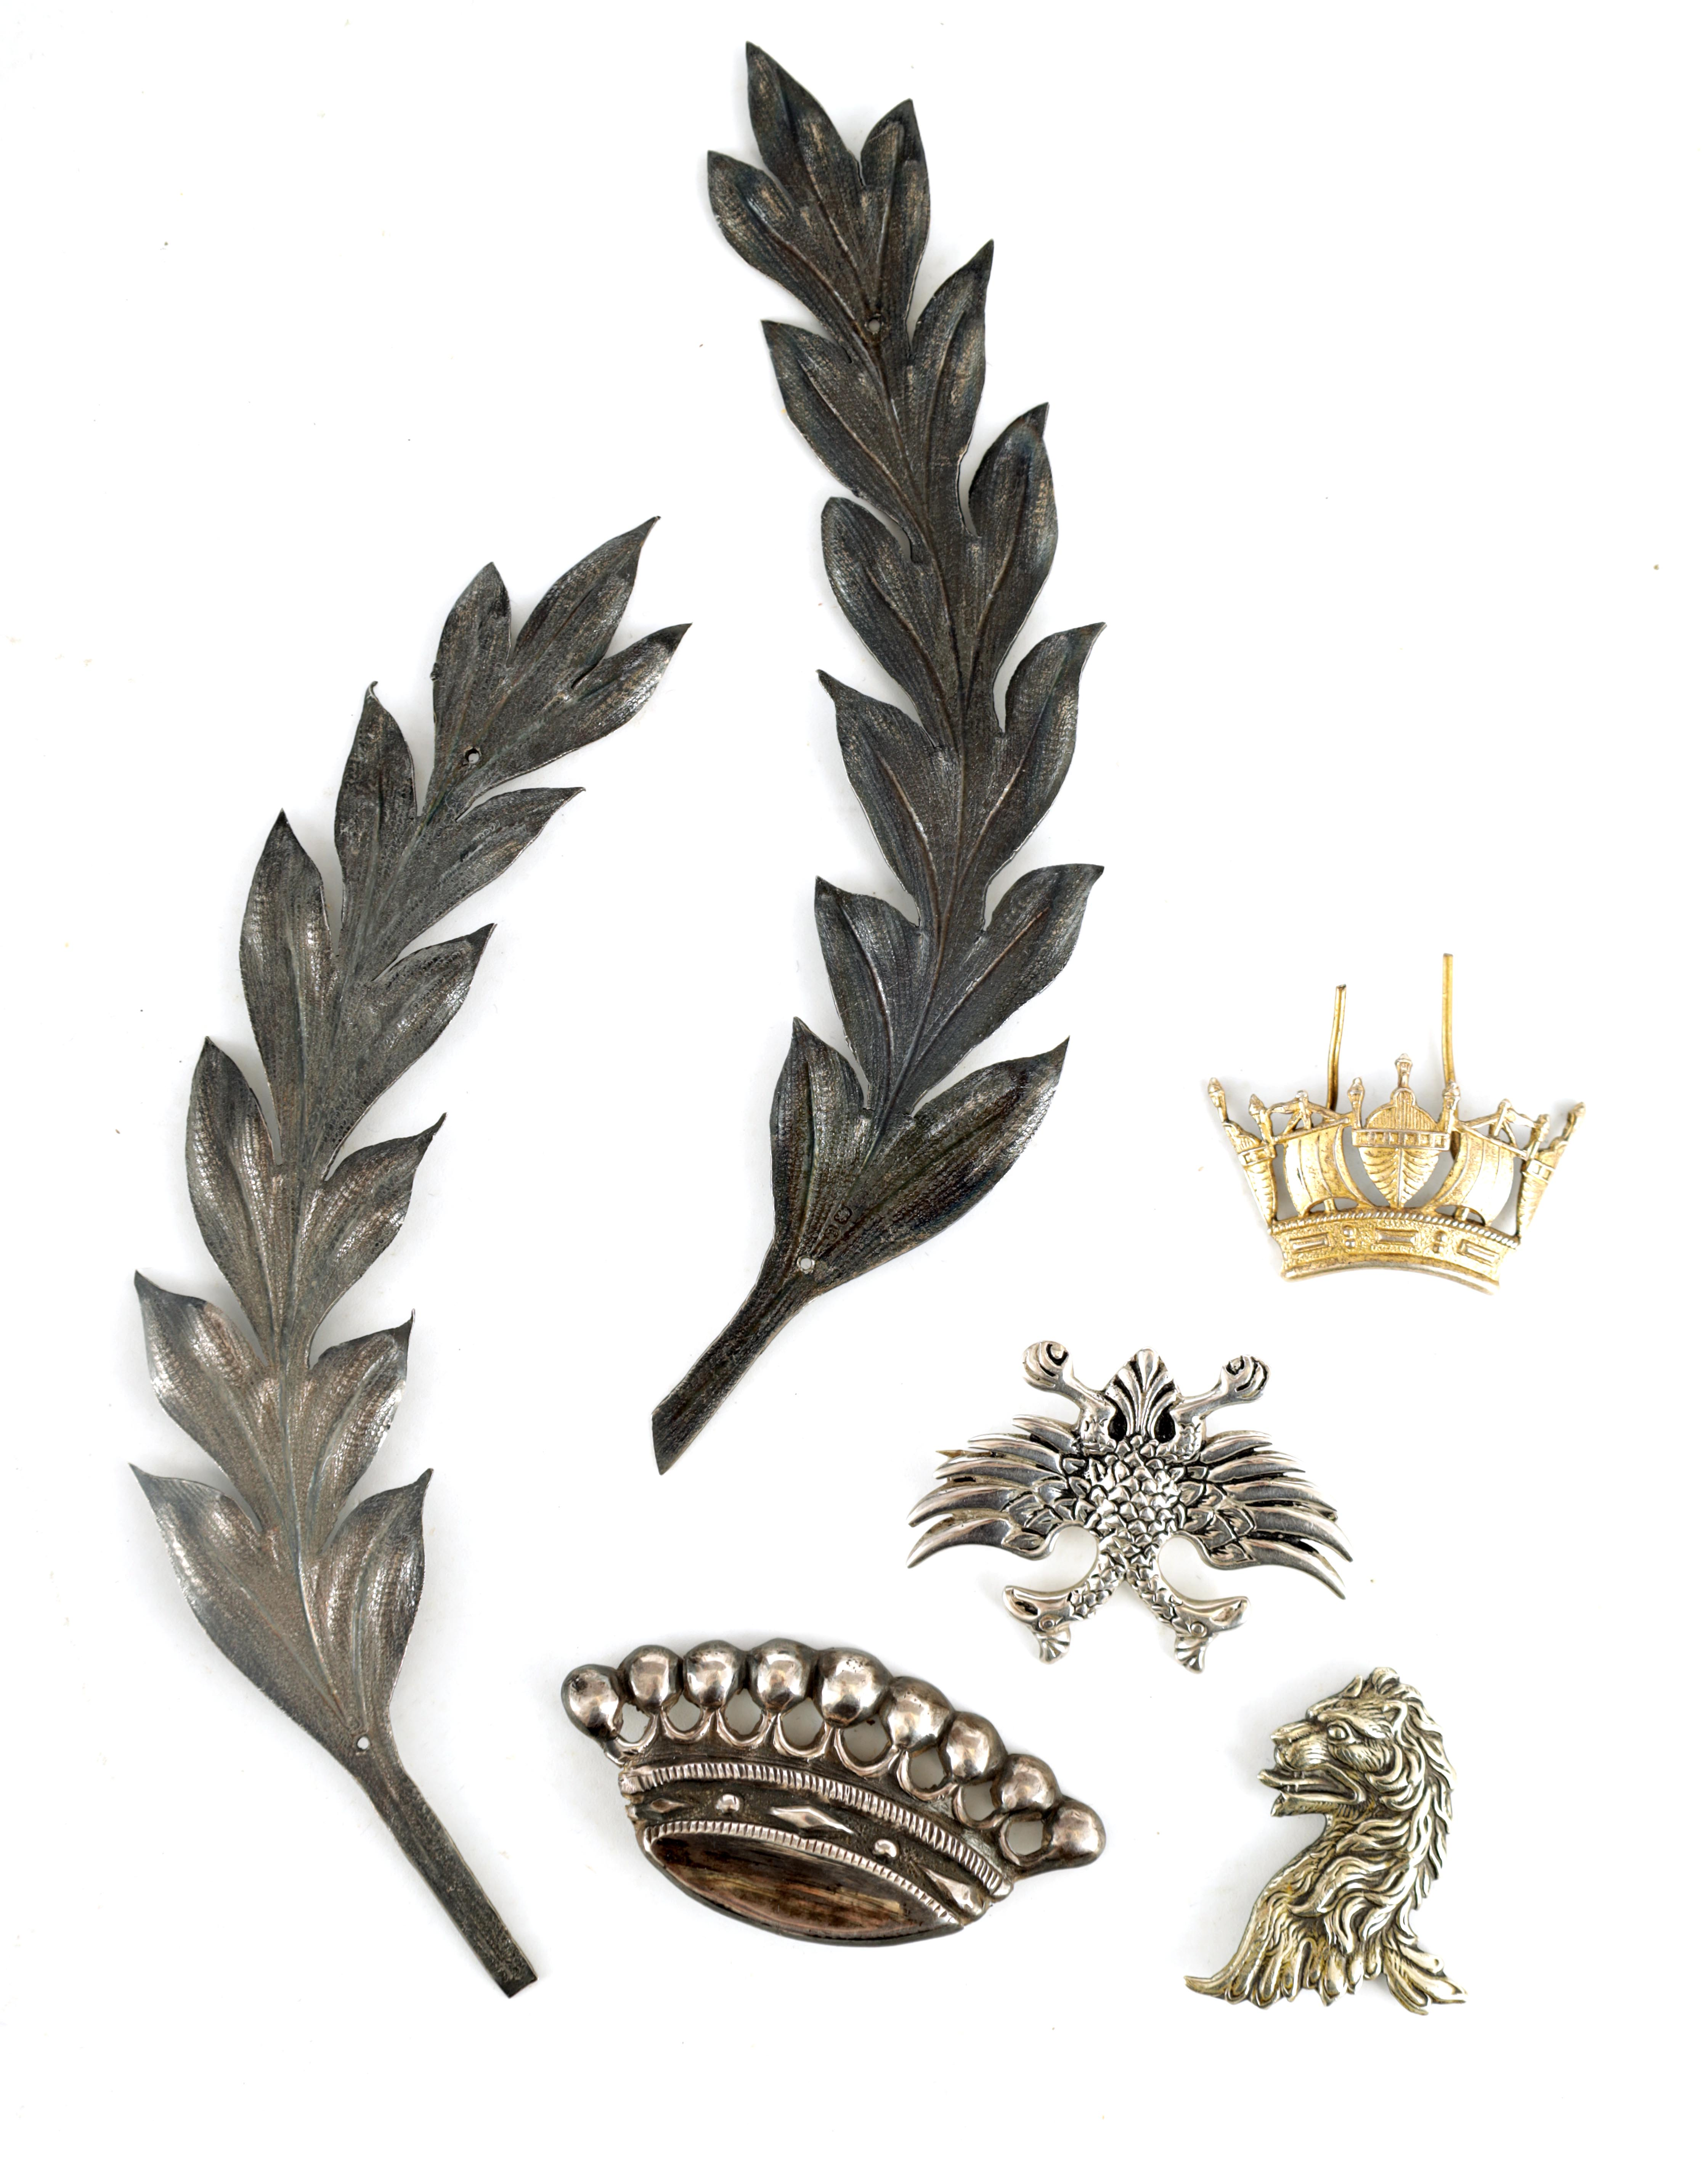 A SELECTION OF SOLID SILVER BADGES AND MOUNTS depicting a pair of hallmarked fern leaves 14cm